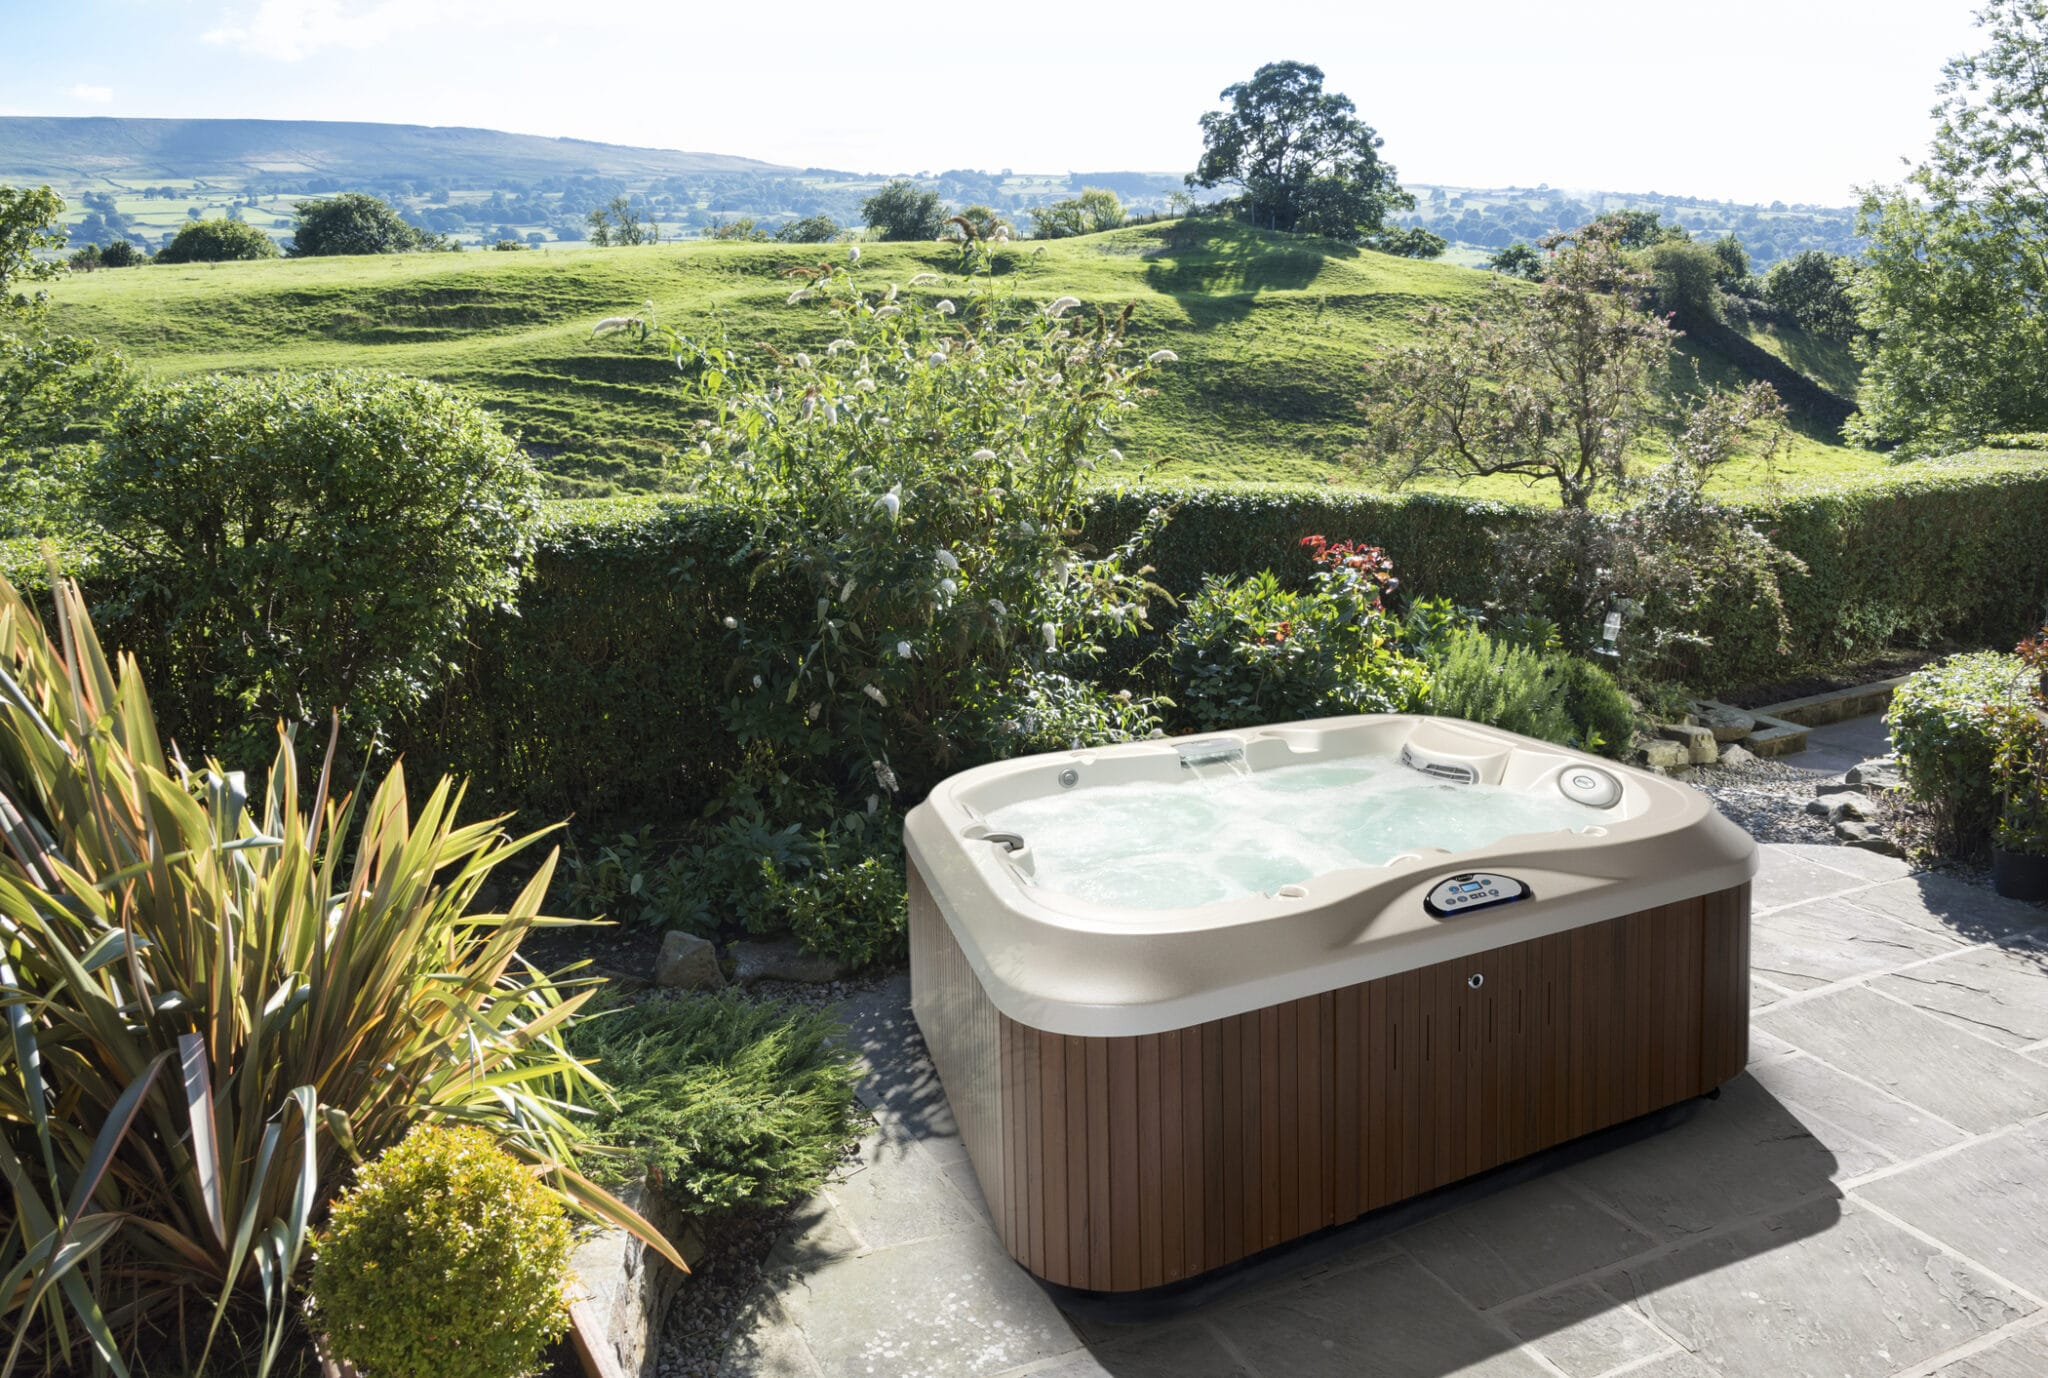 Boost your immune system naturally with a hot tub